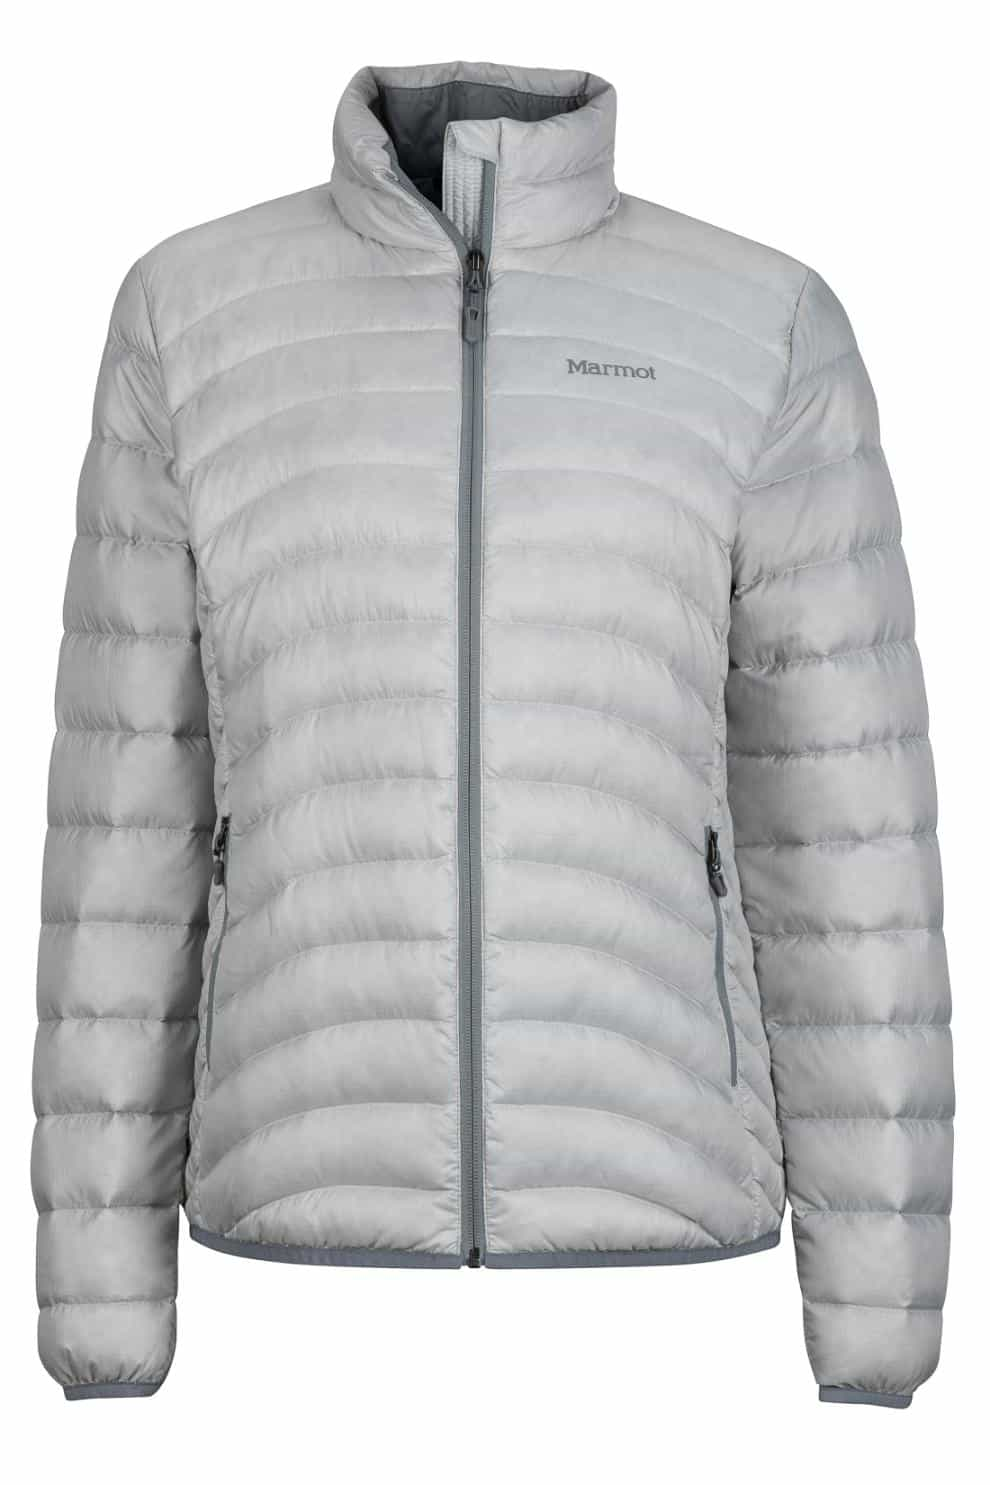 Marmot-Aruna Jacket -  Women's